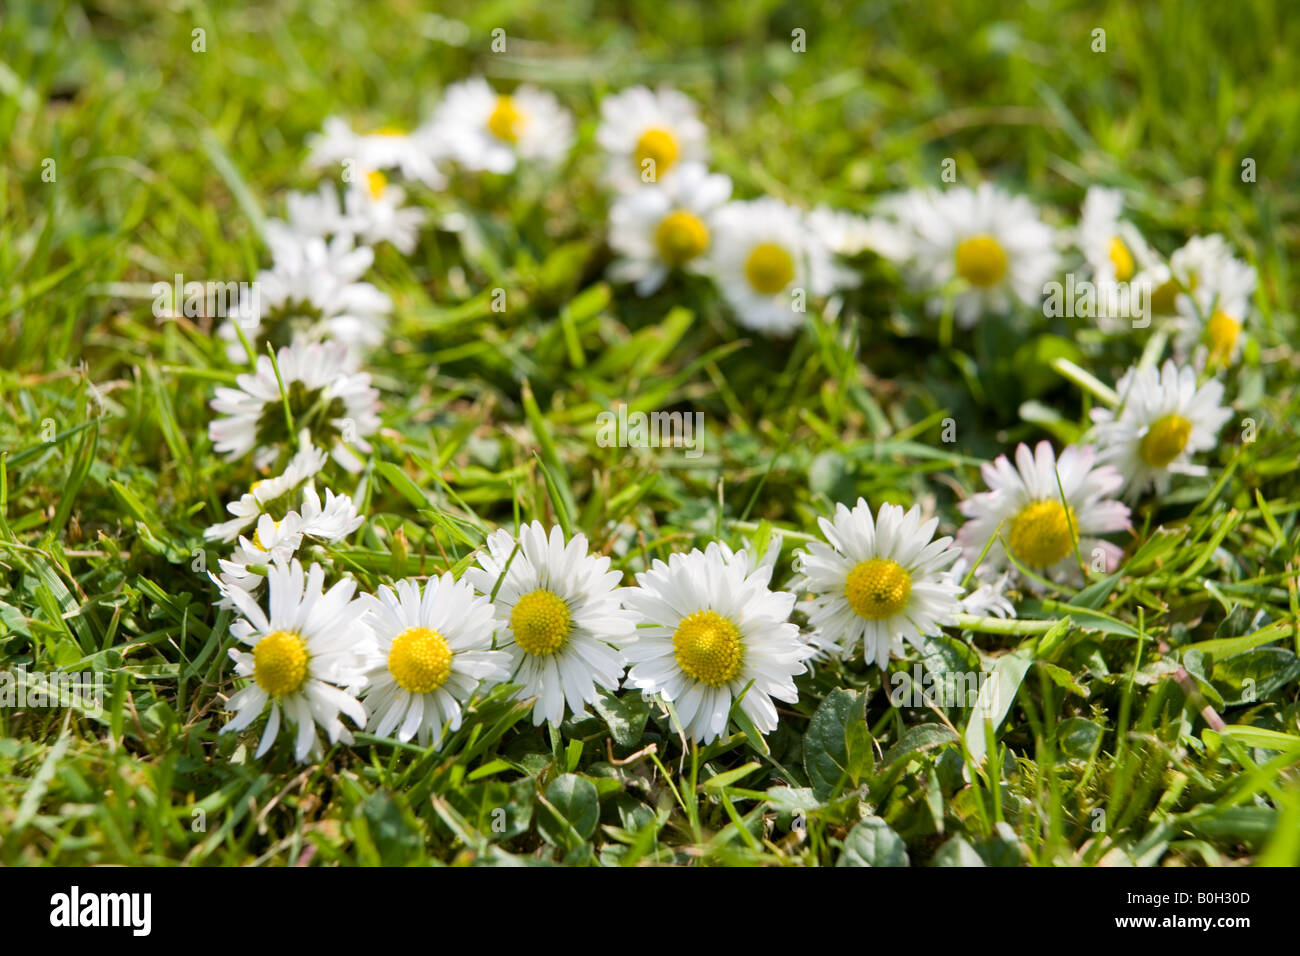 daisy chain in the shape of a heart on the grass - Stock Image